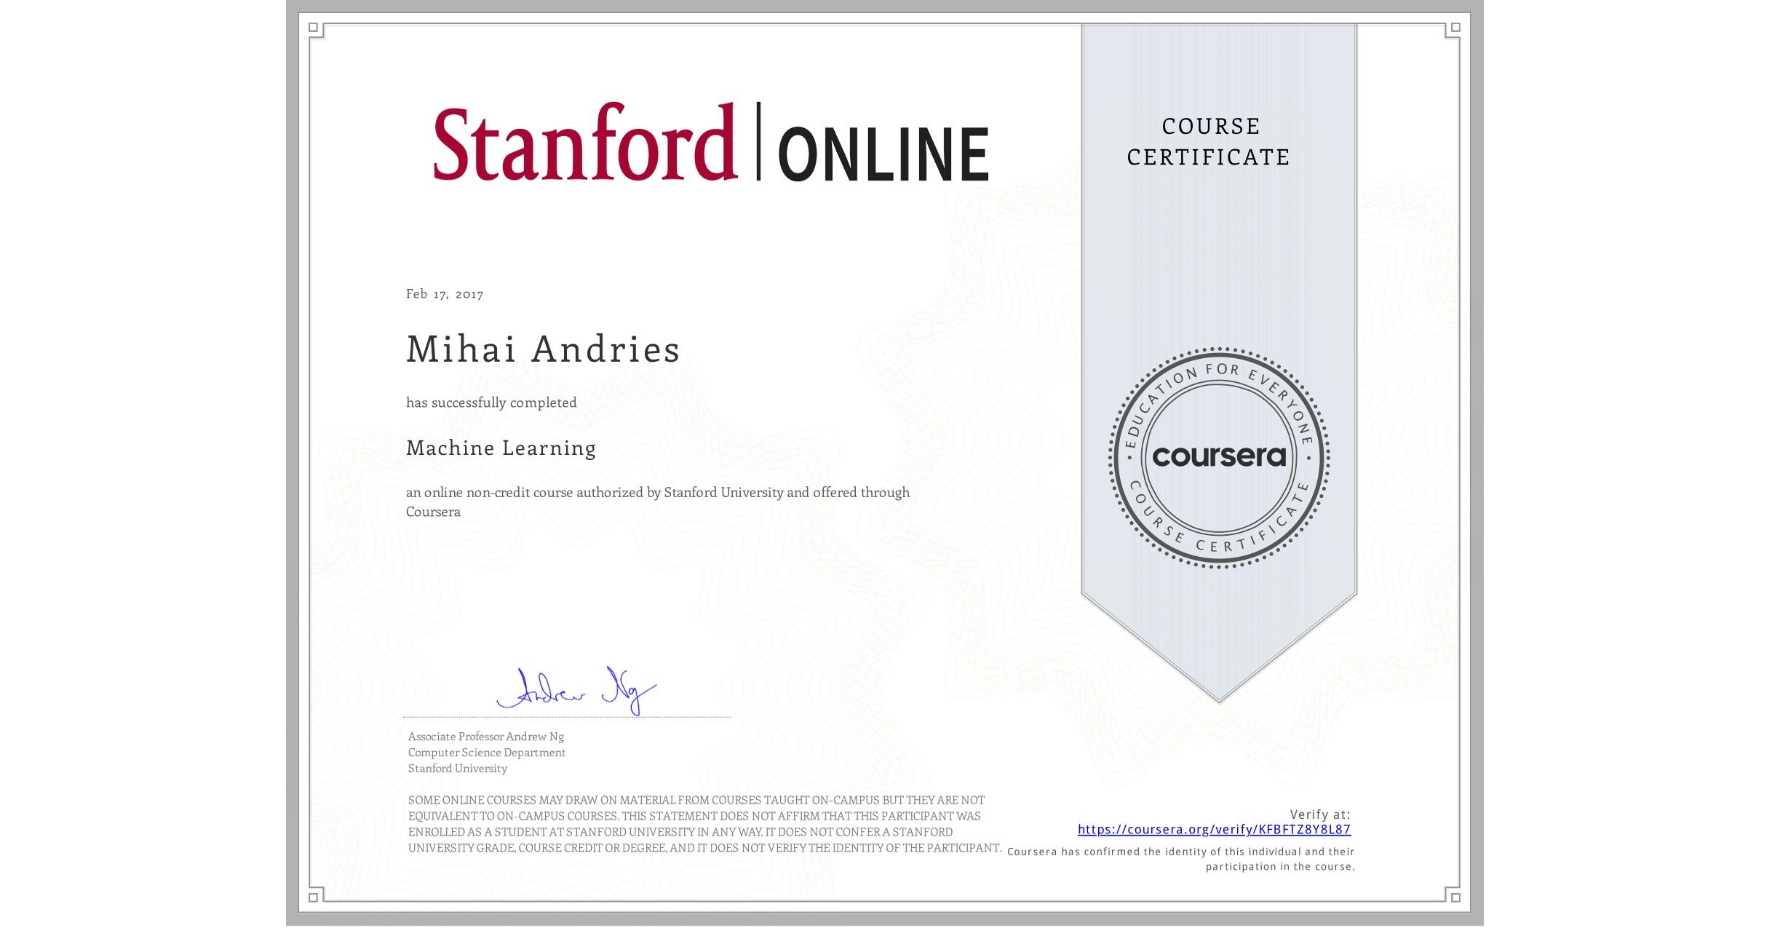 View certificate for Mihai Andries, Machine Learning, an online non-credit course authorized by Stanford University and offered through Coursera